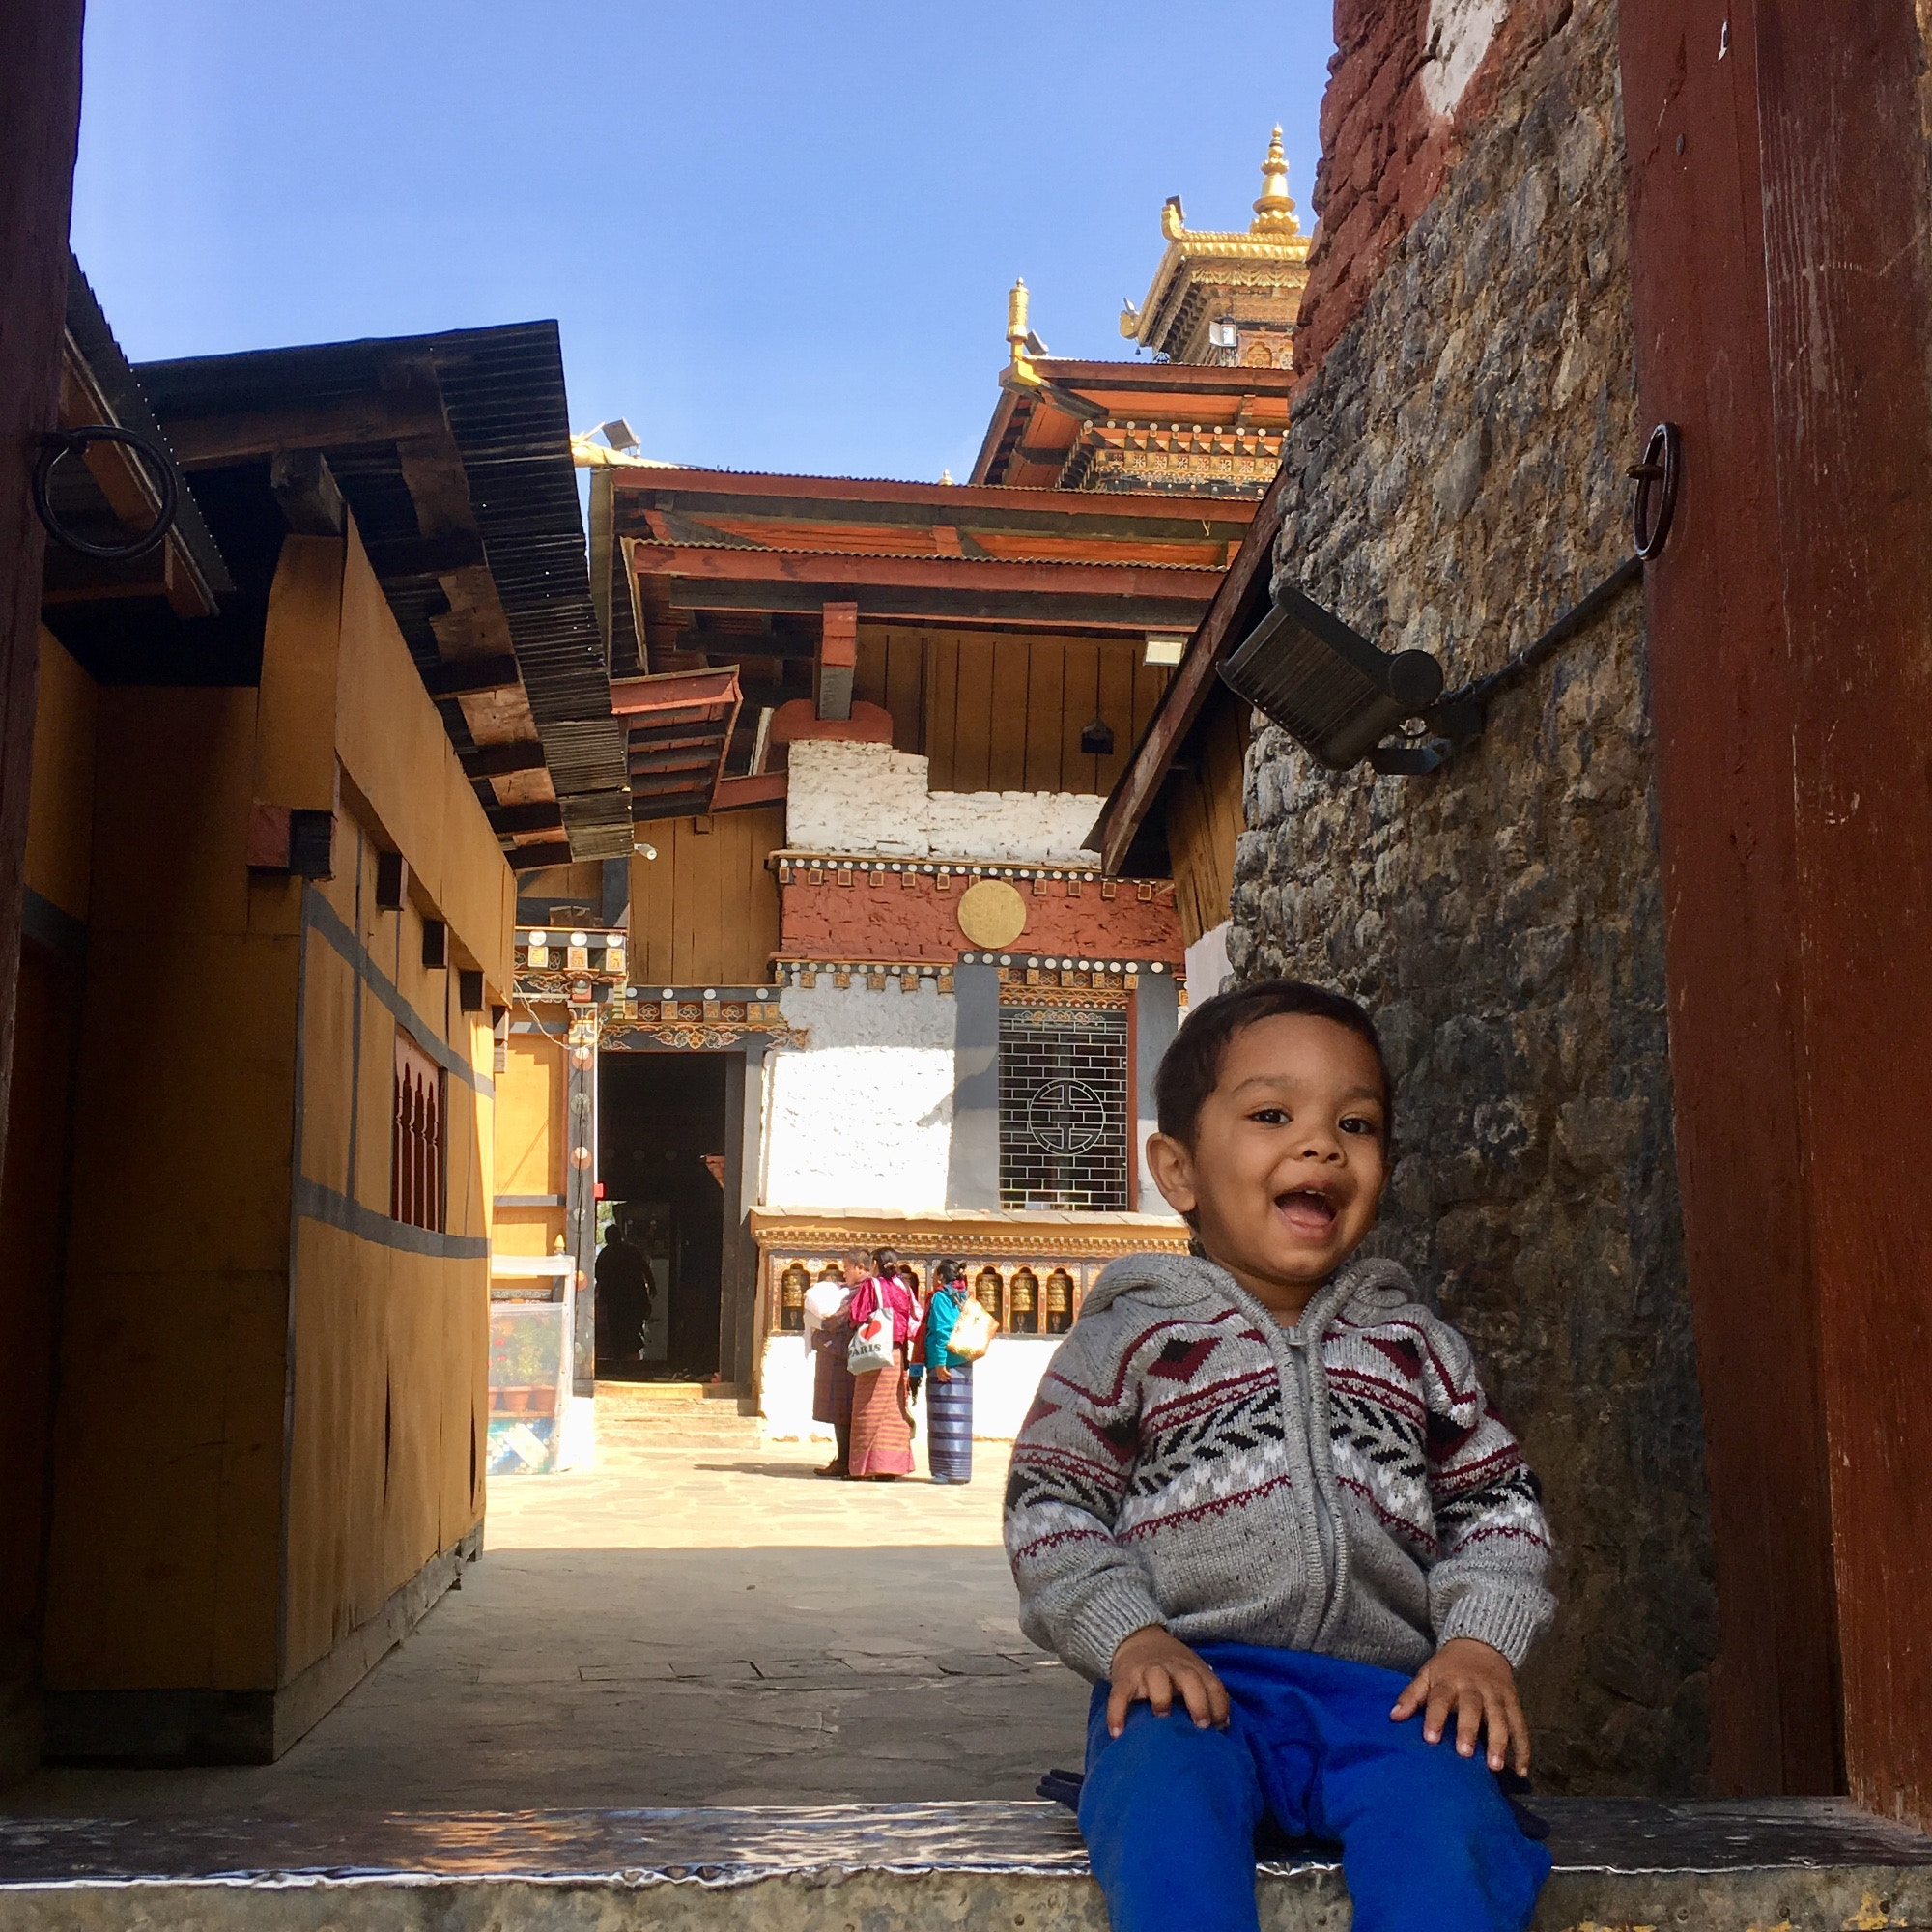 Samai's son on the steps of a 12th-century monastery in Bhutan